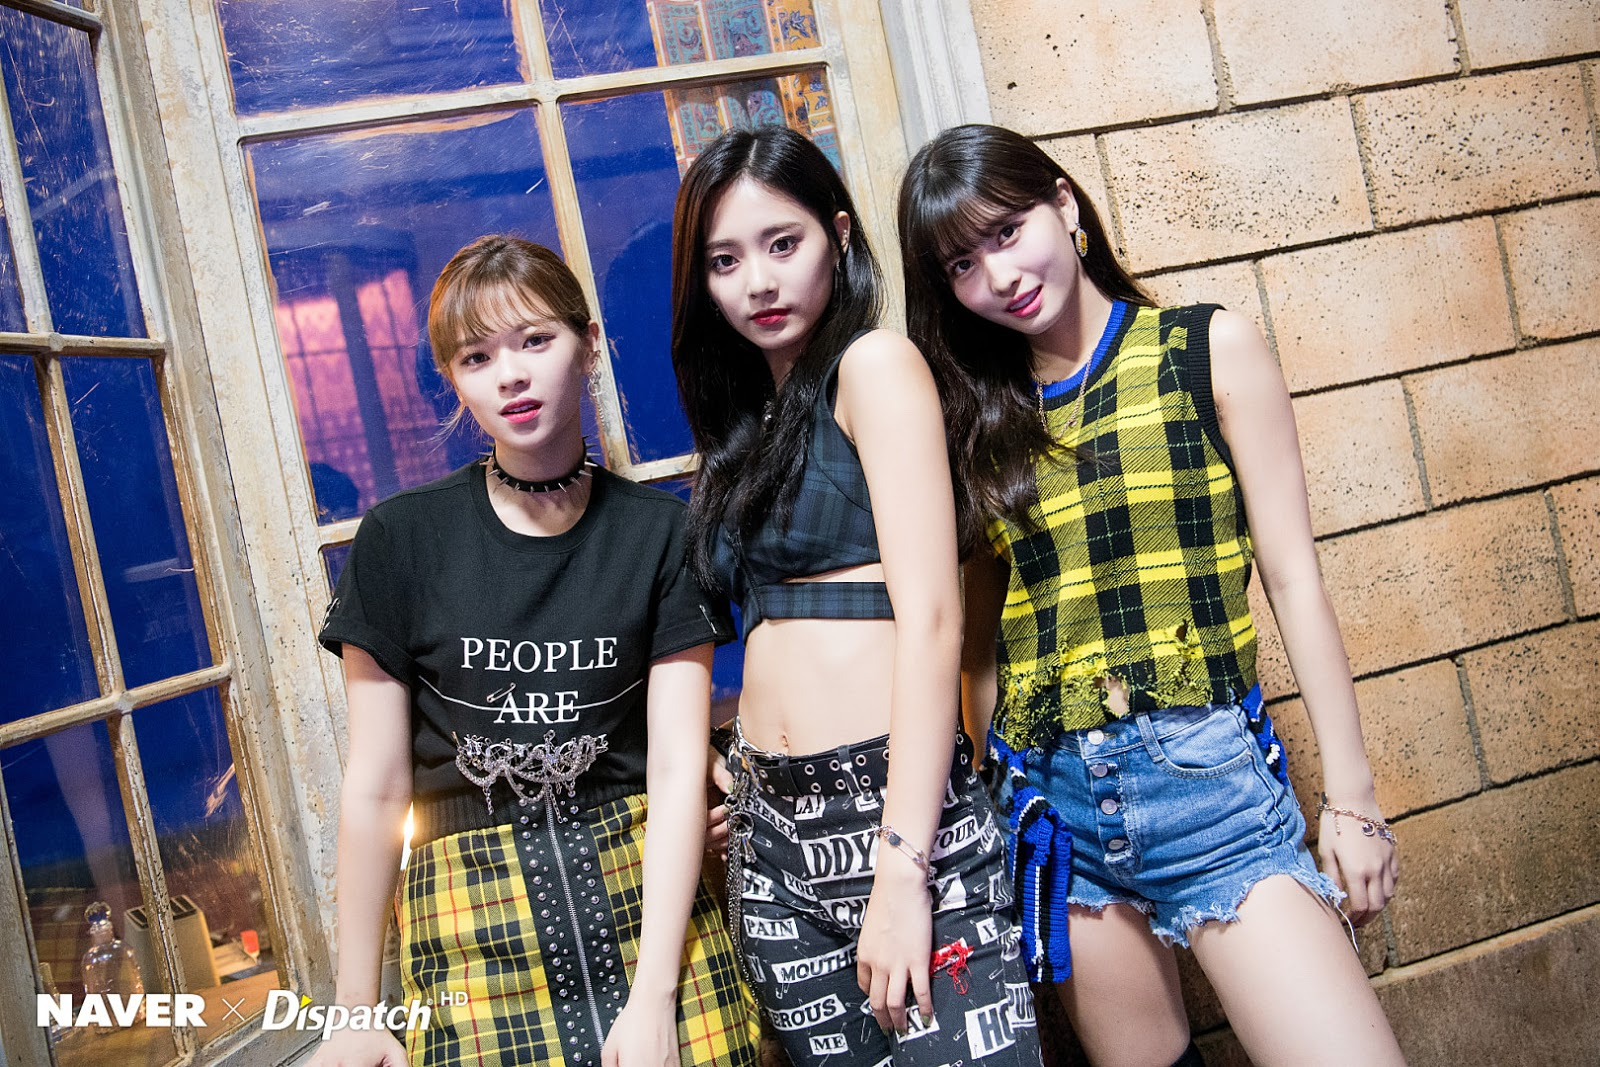 TWICE 'Yes au Yes' MV Shooting - Jeongyeon, Momo, Tzuyu